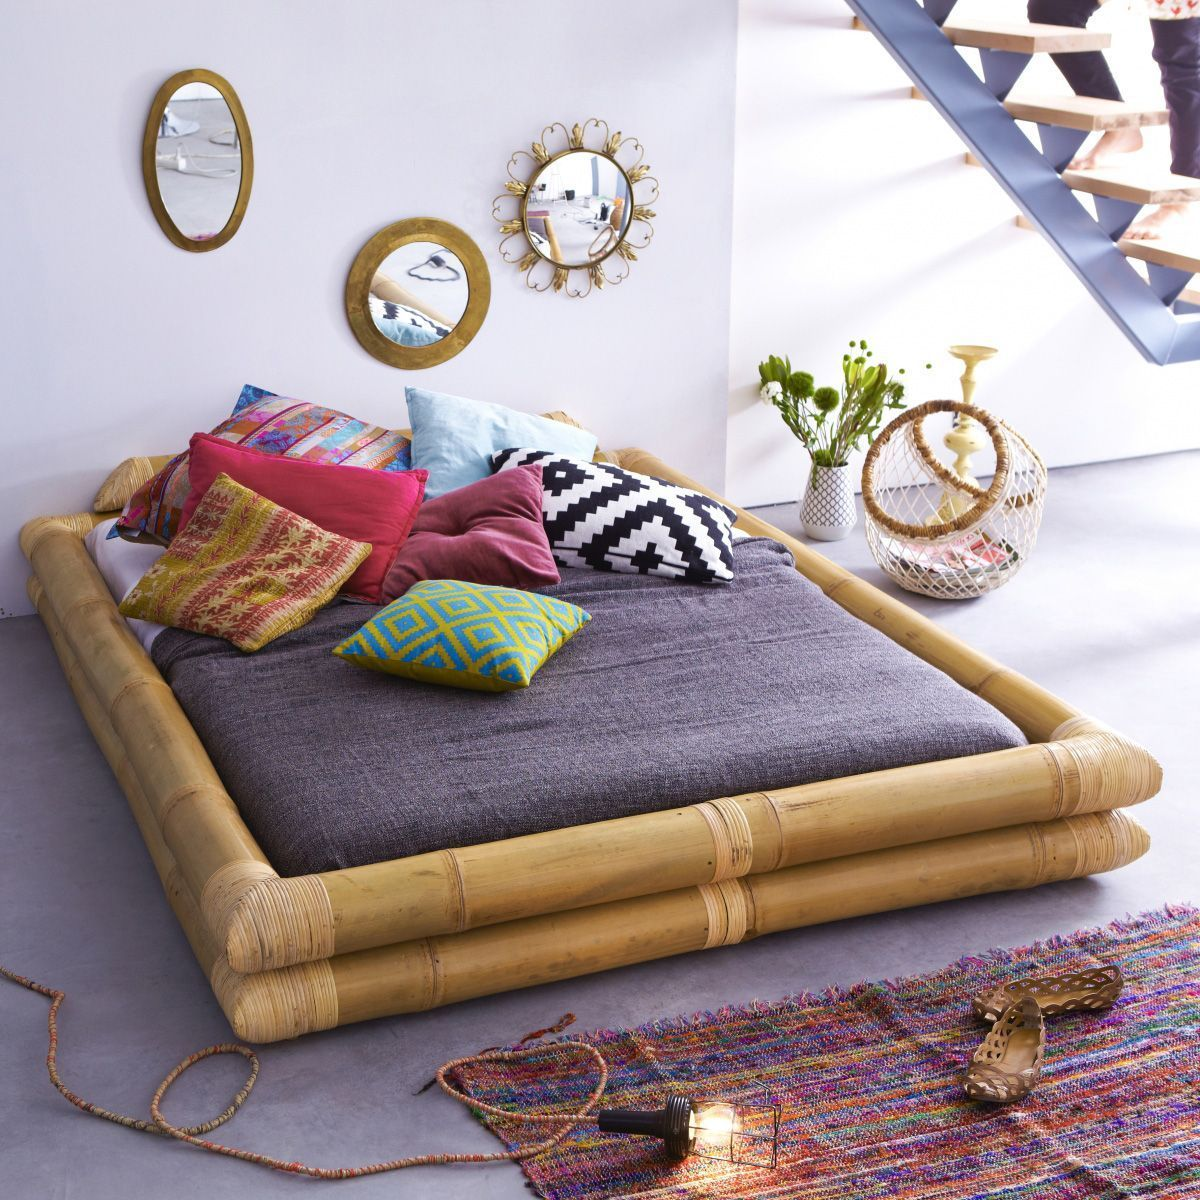 Futon bed is another type of beds that looks like tatami